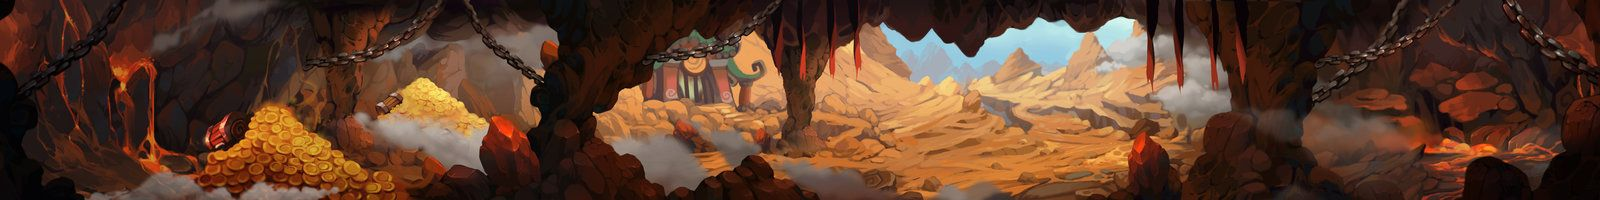 The cave by ATFZ on DeviantArt